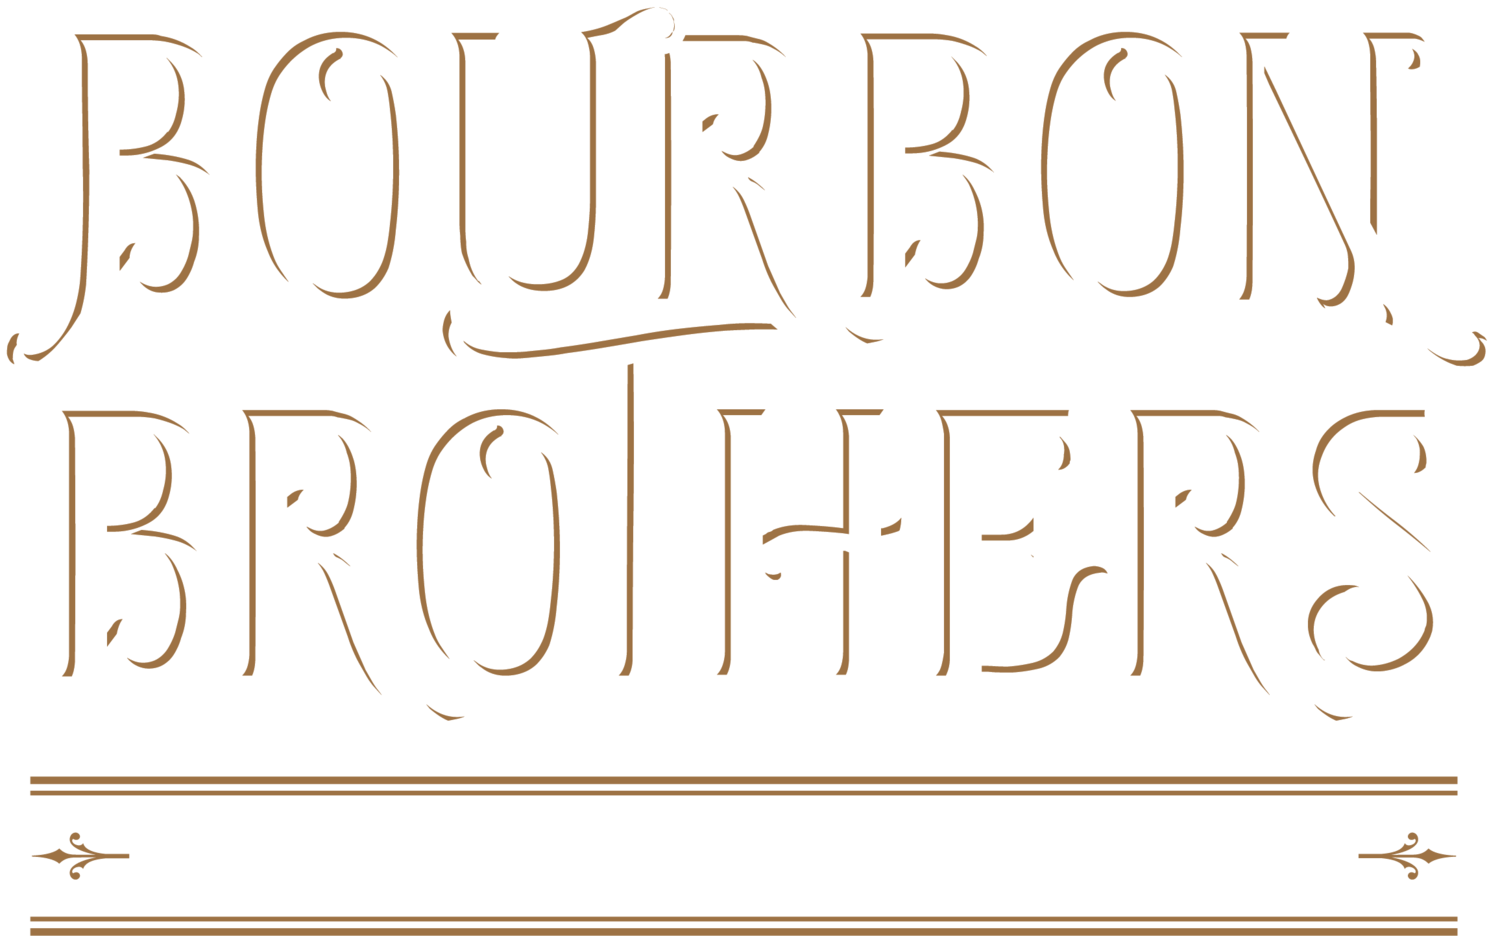 Bourbon Brothers Smokehouse & Tavern